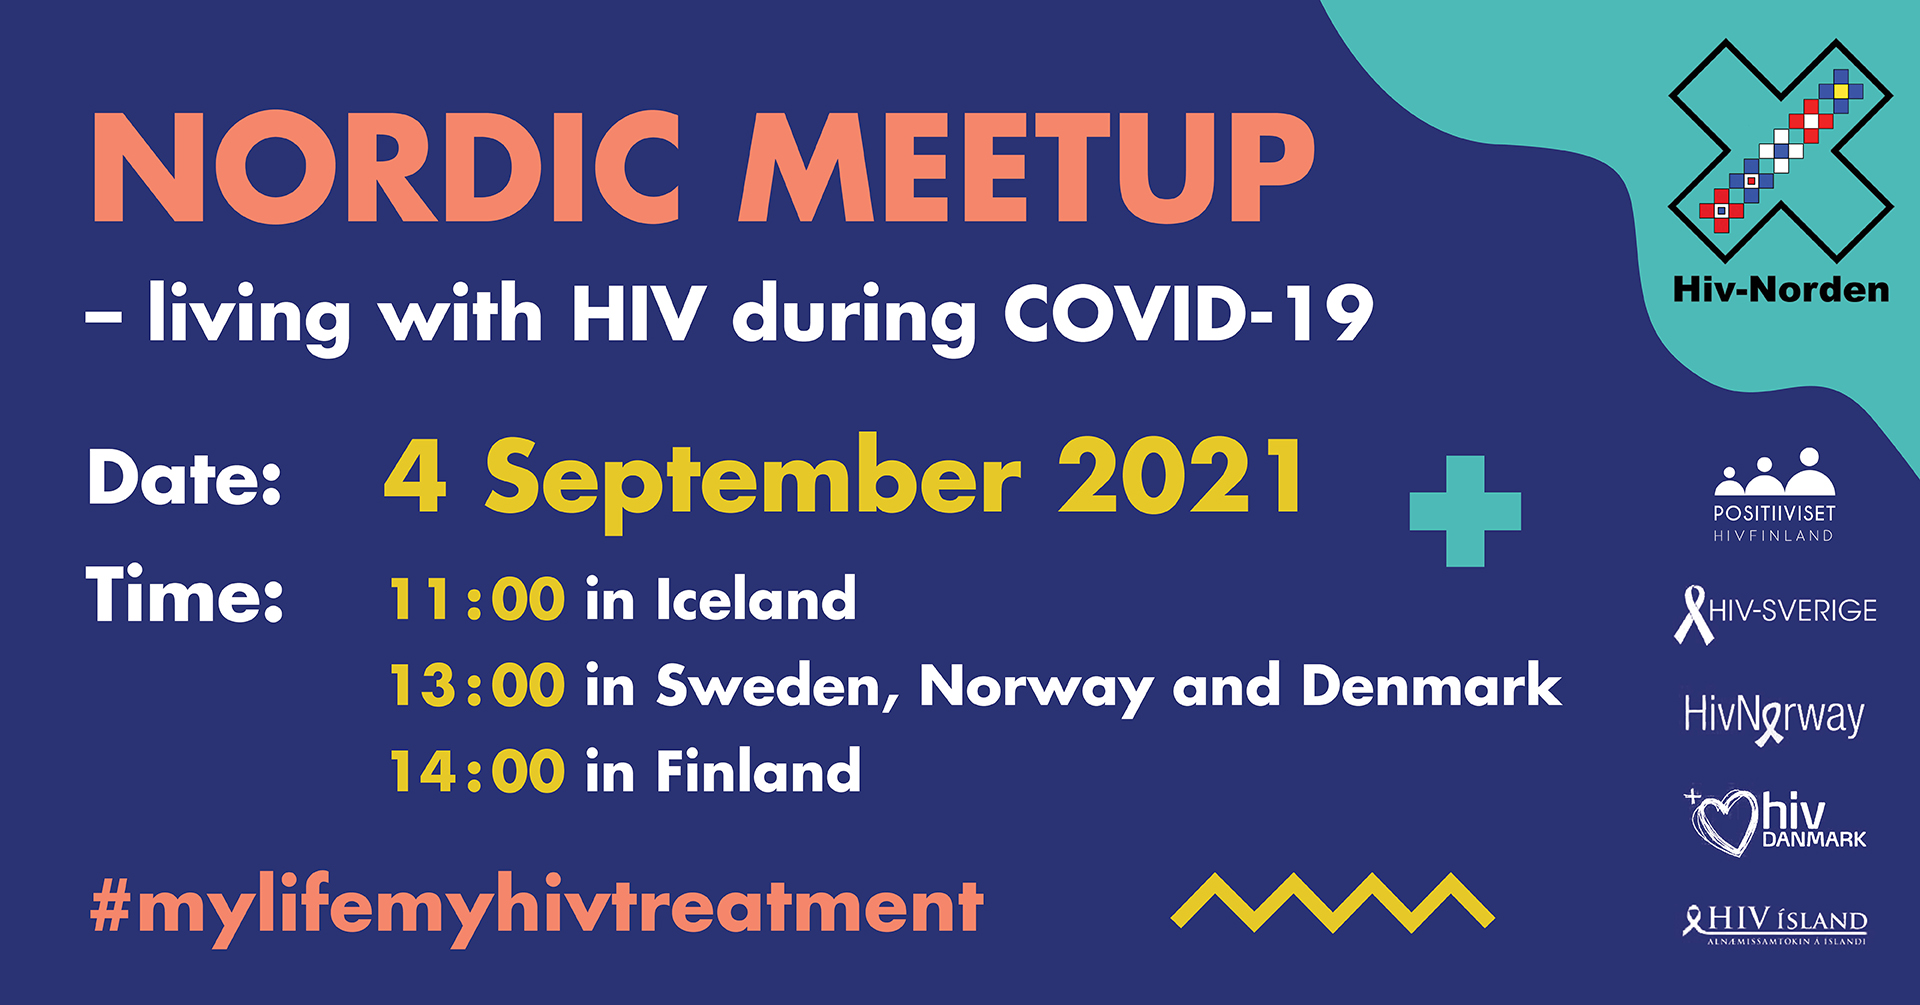 Nordic Meetup – living with hiv during Covid-19